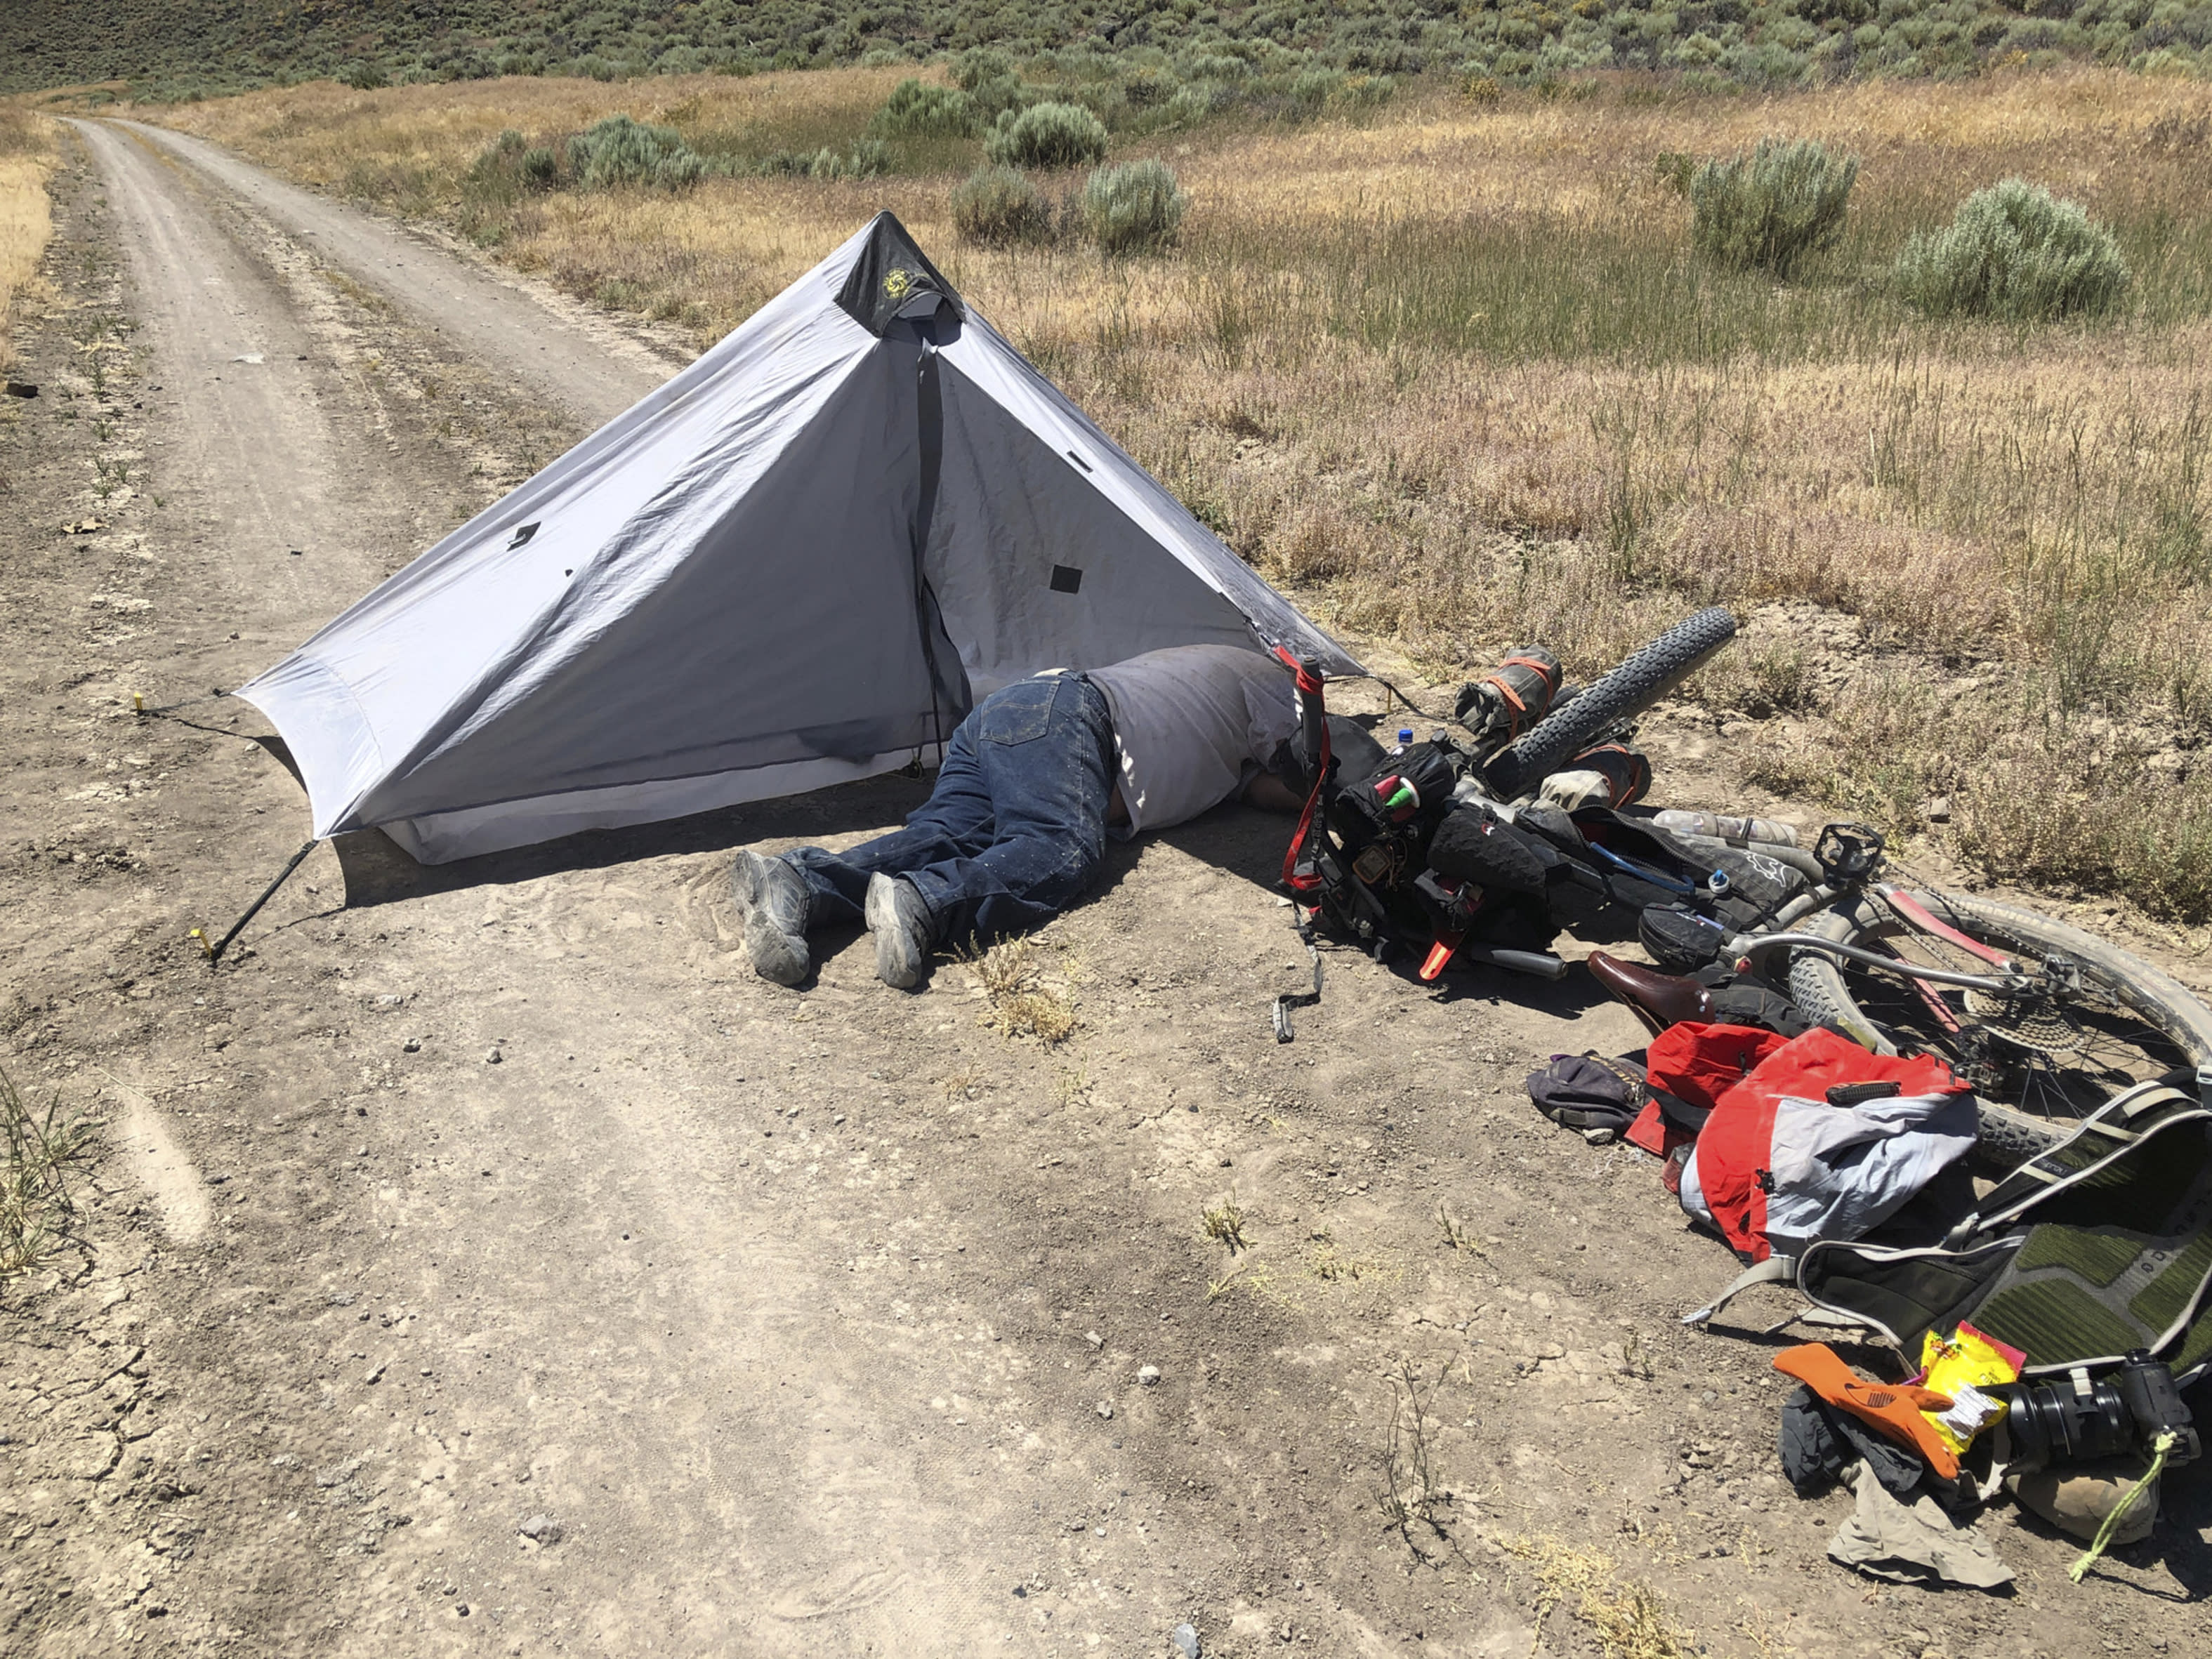 This July 18, 2019, photo provided by Tomas Quinones shows Gregory Randolph, a 73-year-old man who was stranded in the remote Oregon high desert. The 73-year-old man who was stranded in the remote Oregon high desert for four days with his two dogs was rescued when a long-distance mountain biker discovered him near death on a dirt road, authorities said Thursday, July 25. (Tomas Quinones via AP)